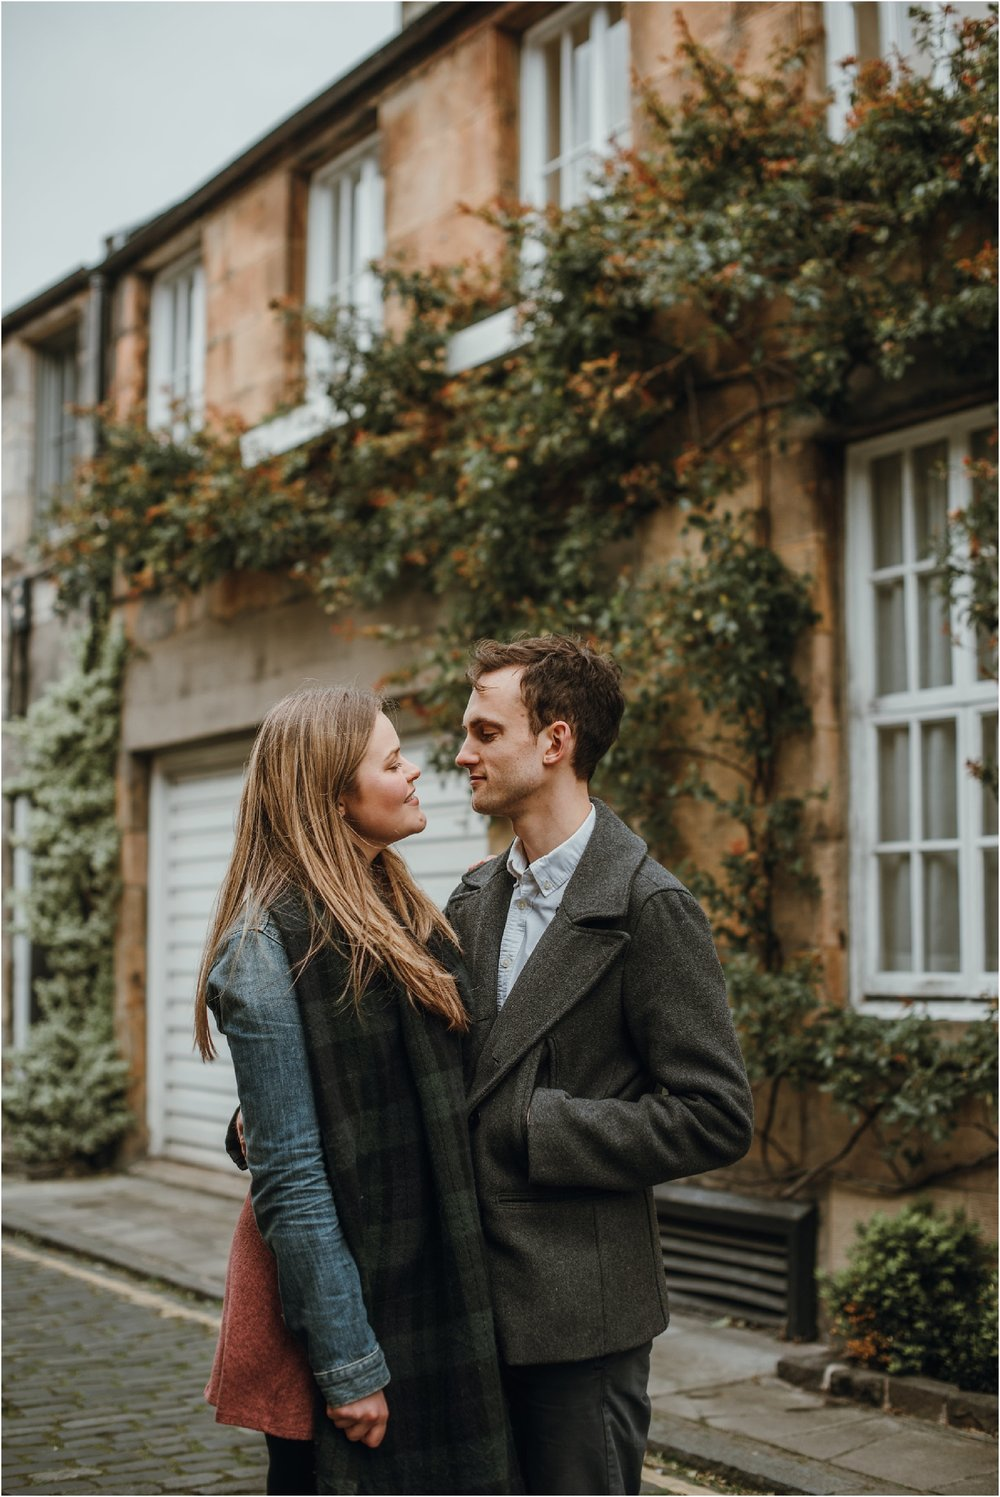 Edinburgh-Engagement-Photographer-TimEmily_0020.jpg